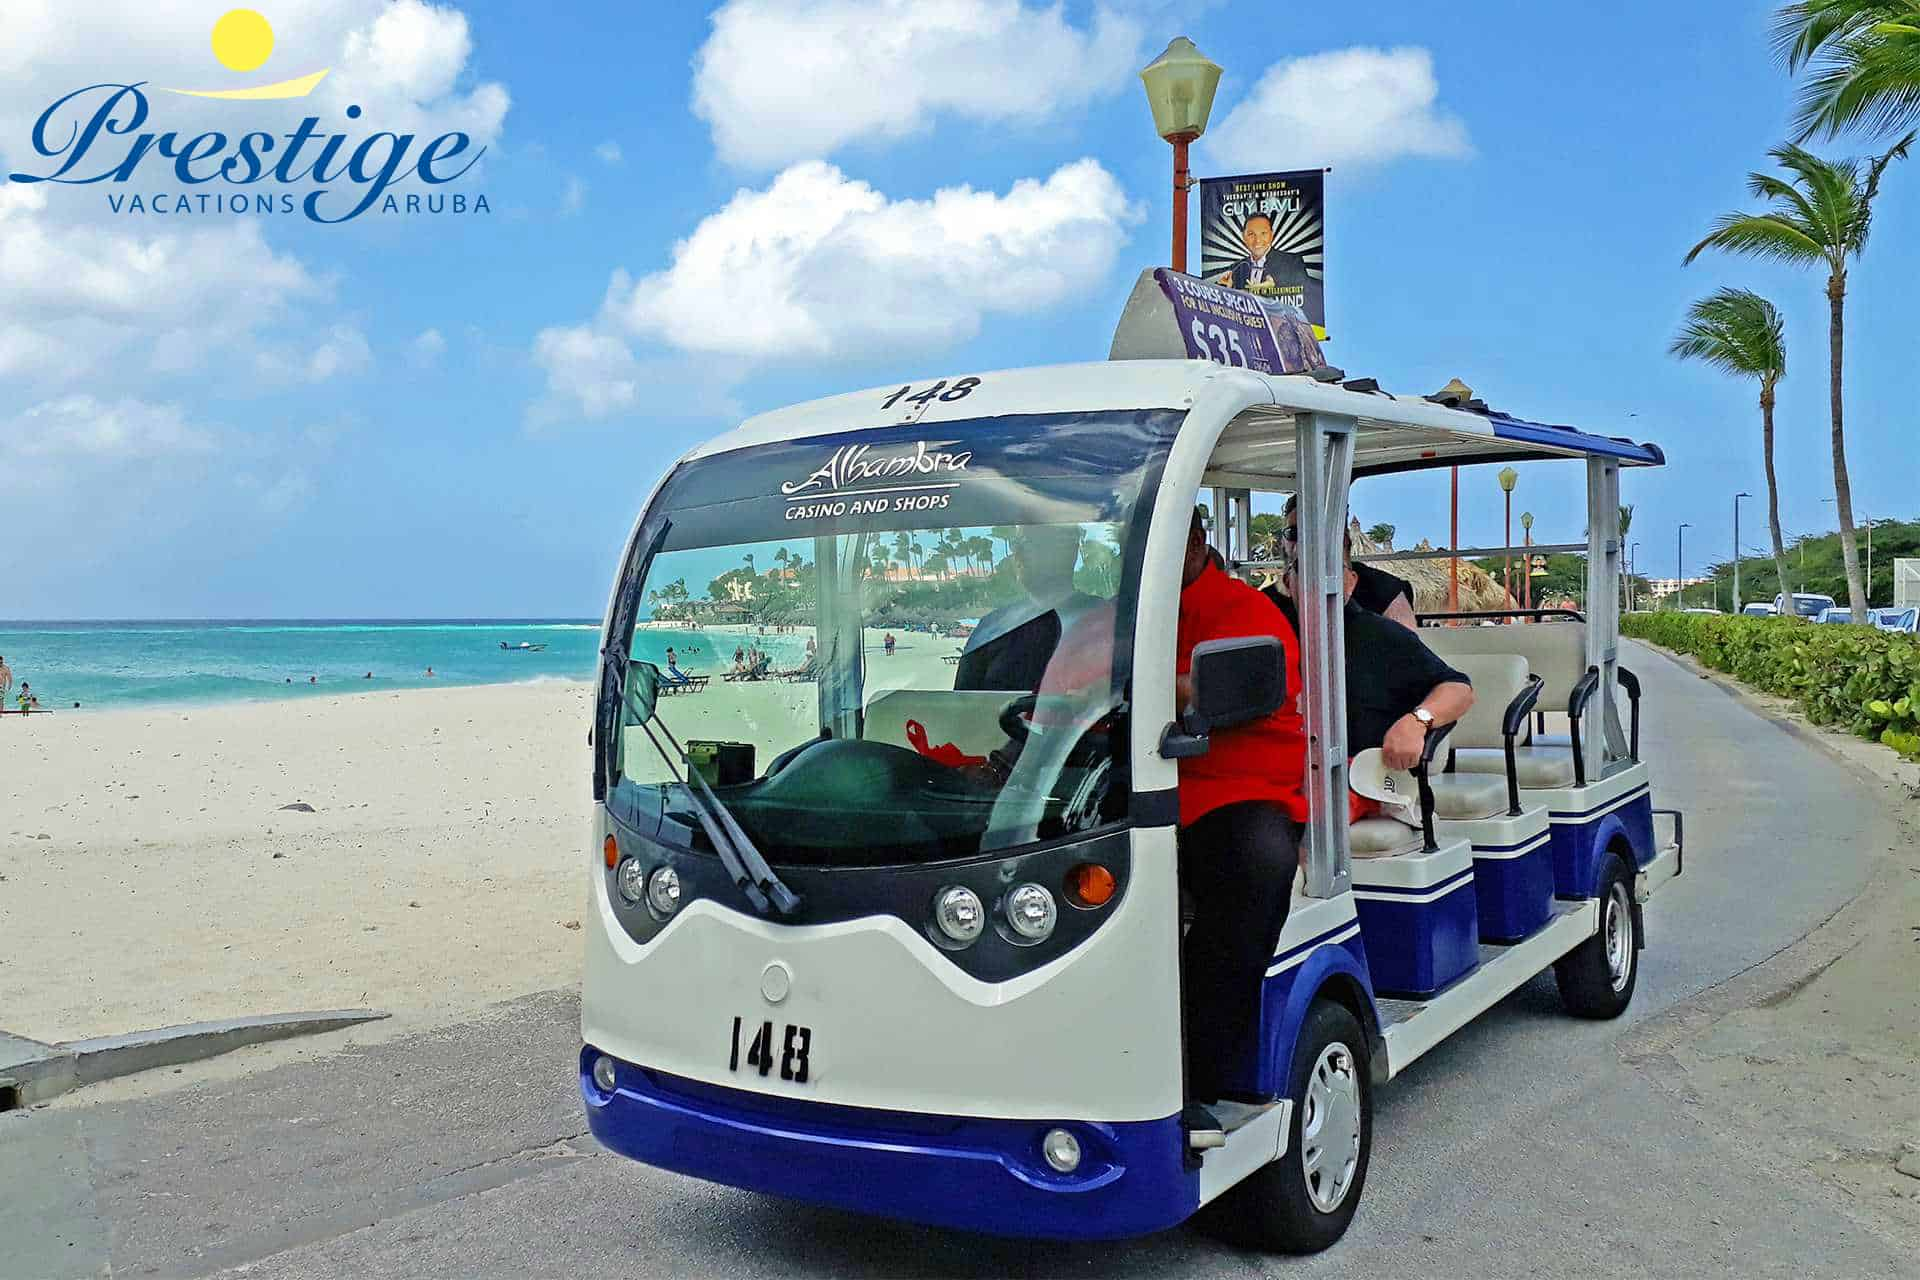 Enjoy being be shuttled around with the free Divi Shuttle Transportation services